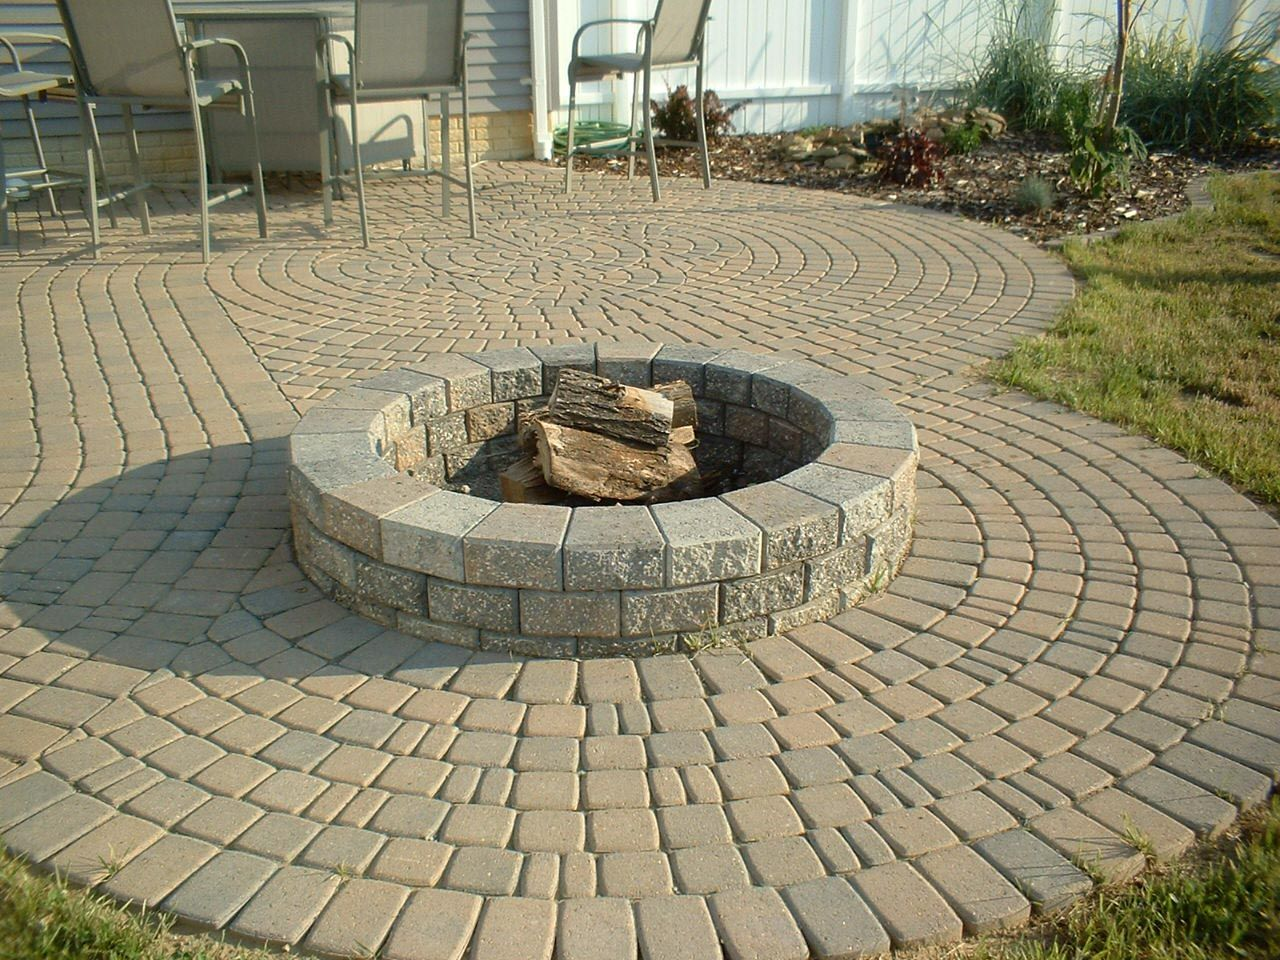 How Many Pavers For Fire Pit Paver Fire Pit Cinder Block Fire Pit Fire Pit Essentials